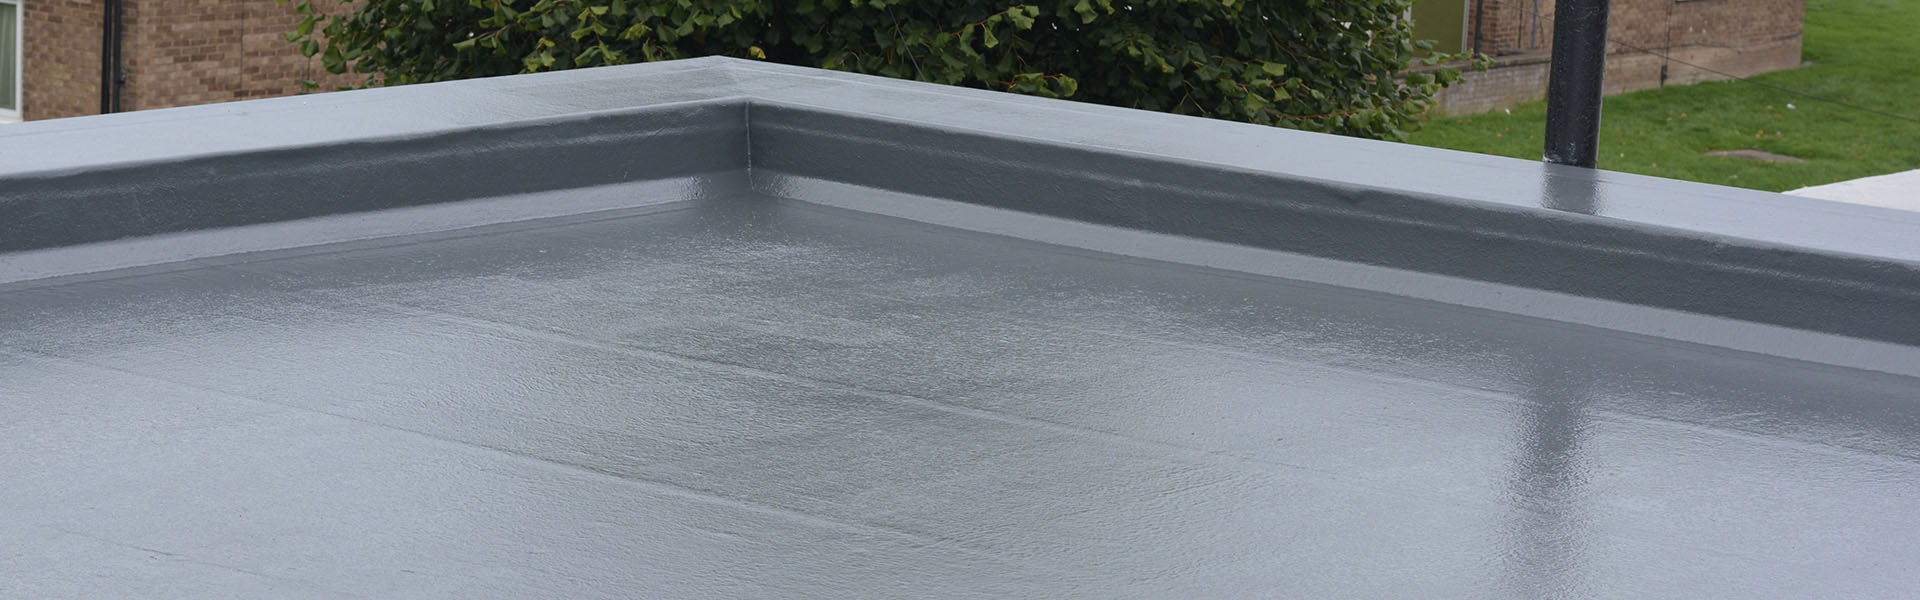 GRP ROOF 1010